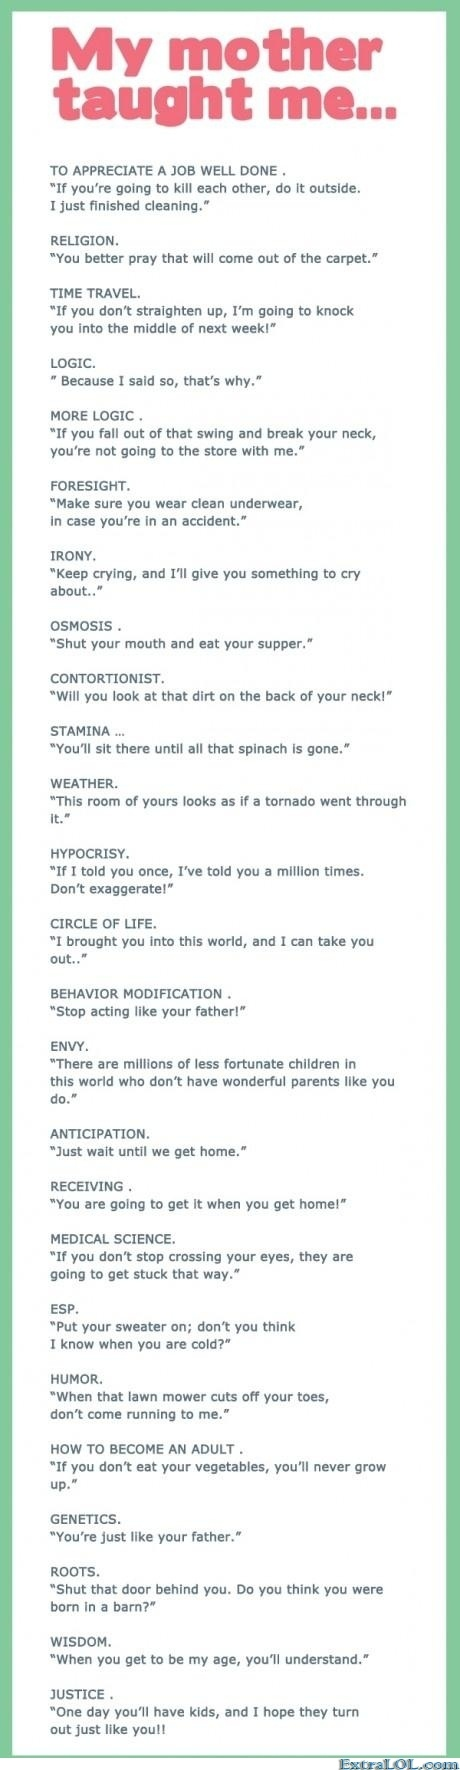 Lessons from Mom      (http://www.extralol.com/?pic=974a6a790e883169299f51ab11add311)